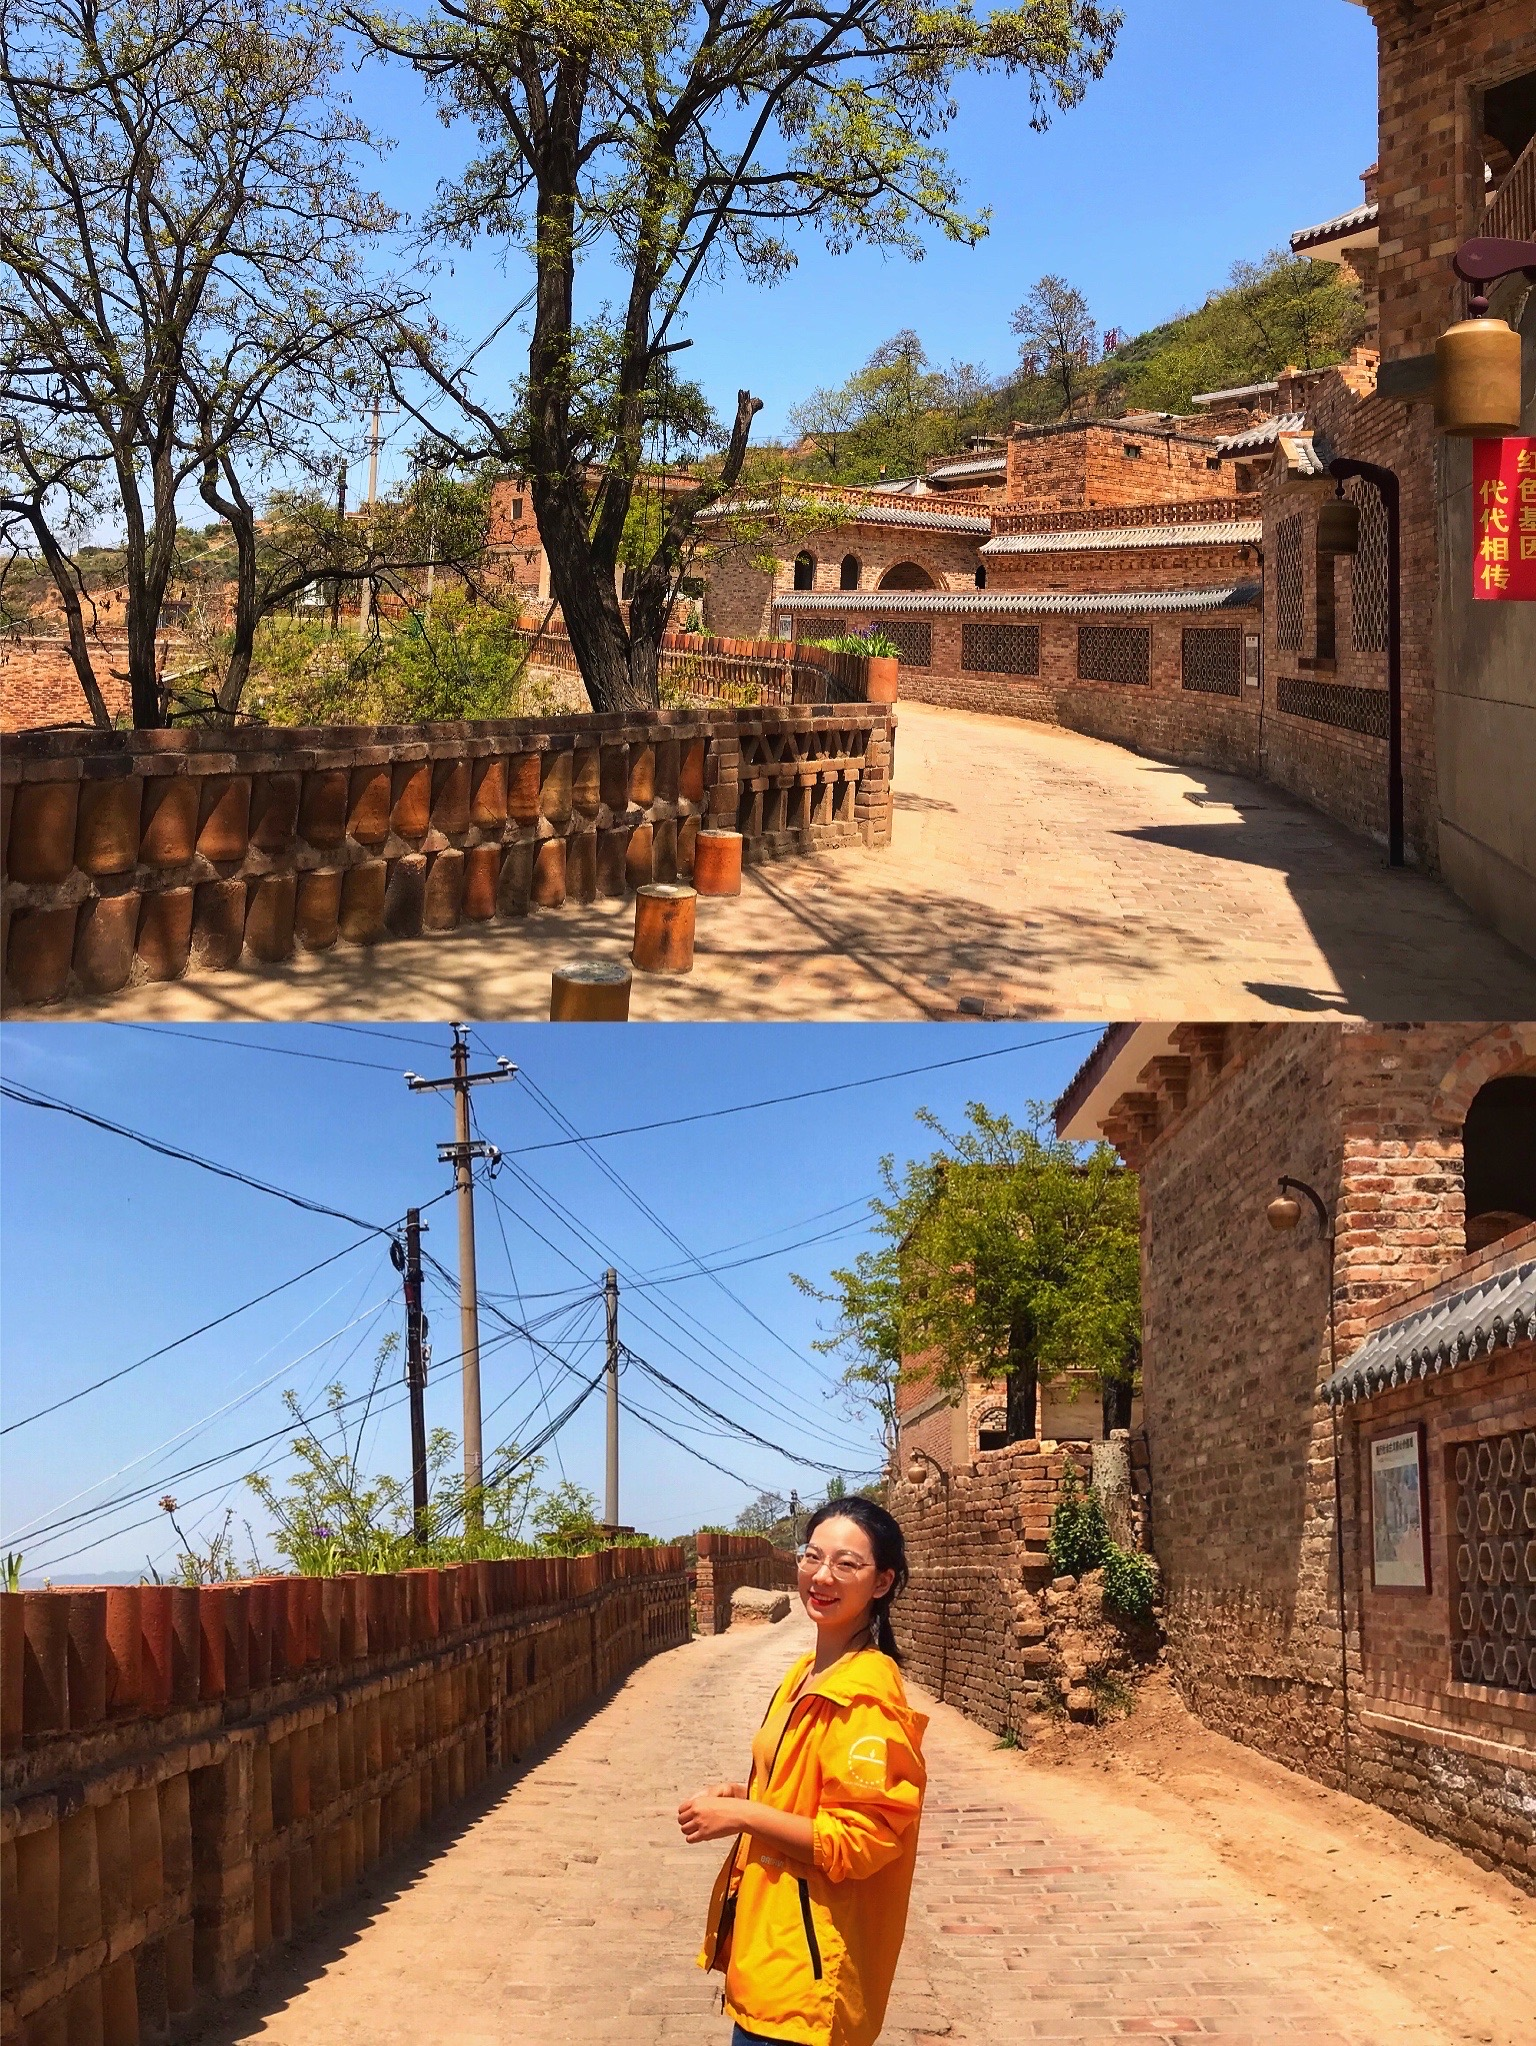 The ancient town of Chenlu